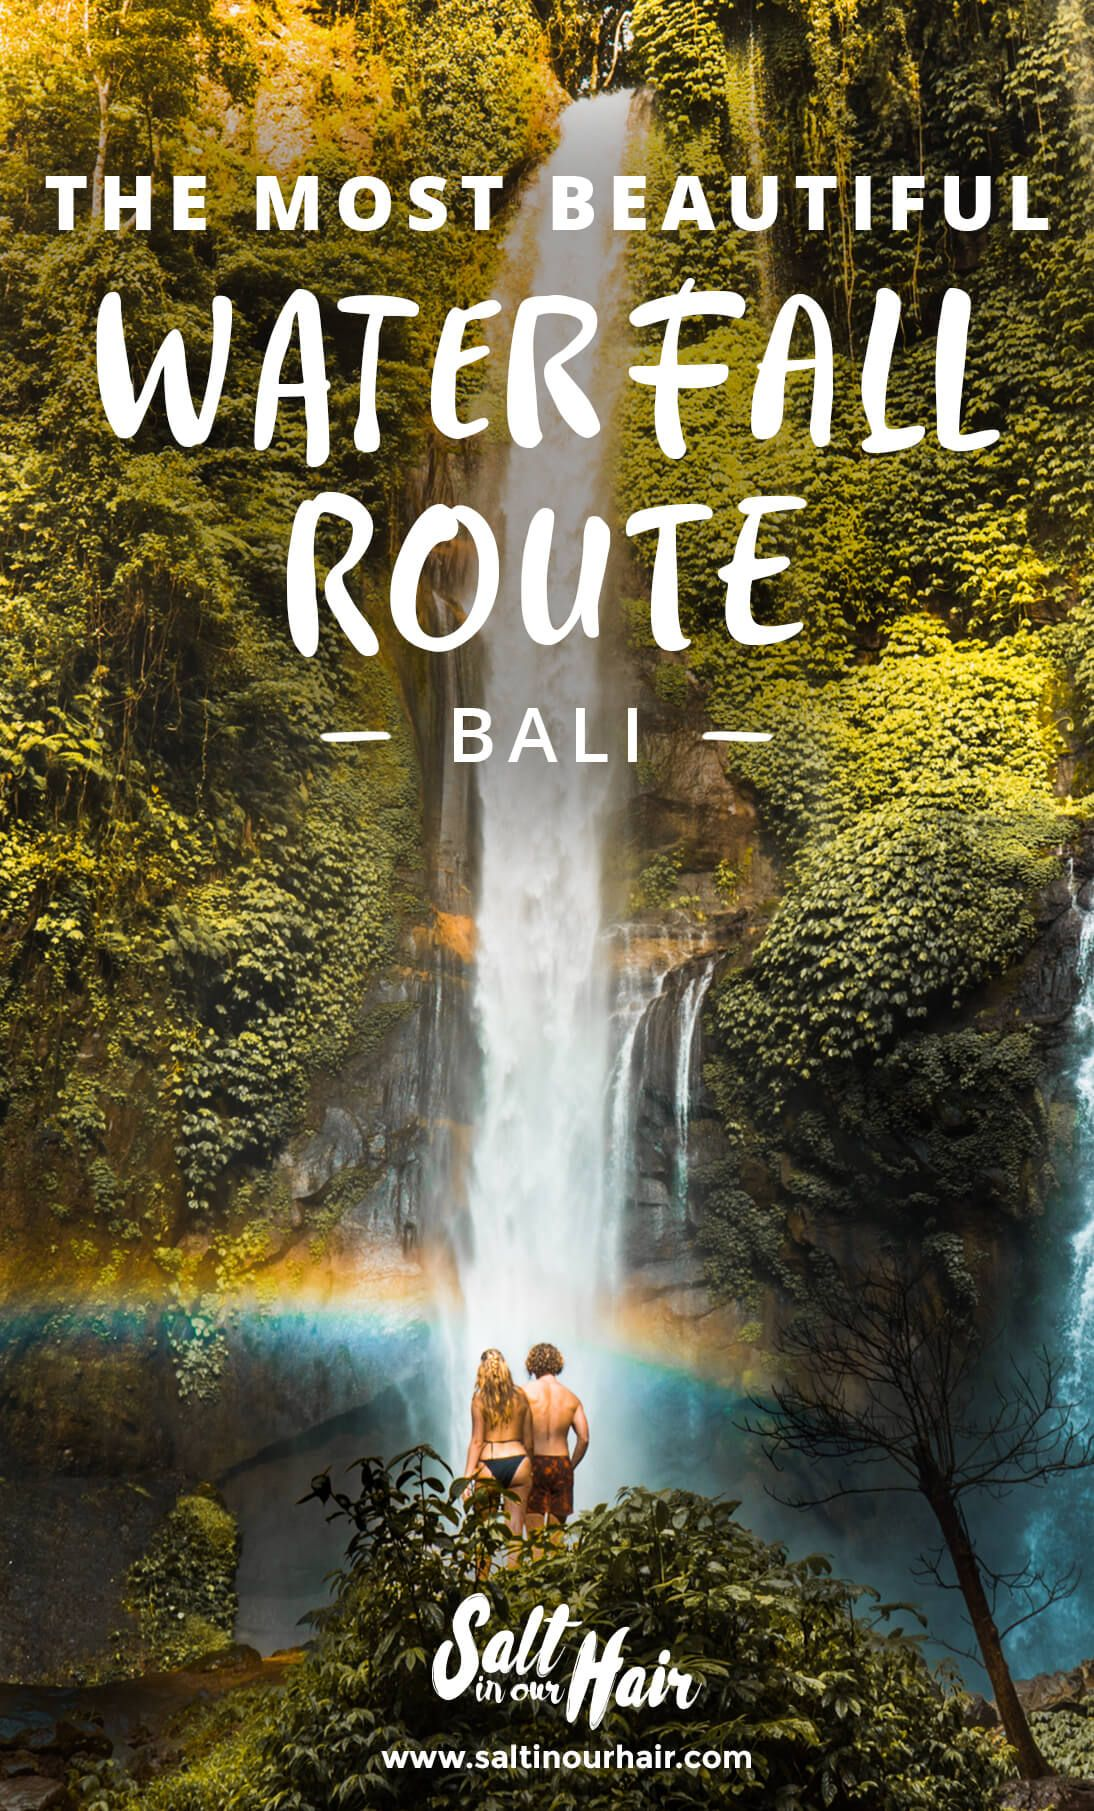 Bali has a large number of waterfalls to be found across the island. This is a Bali waterfall route where you can visit 6 of the best!